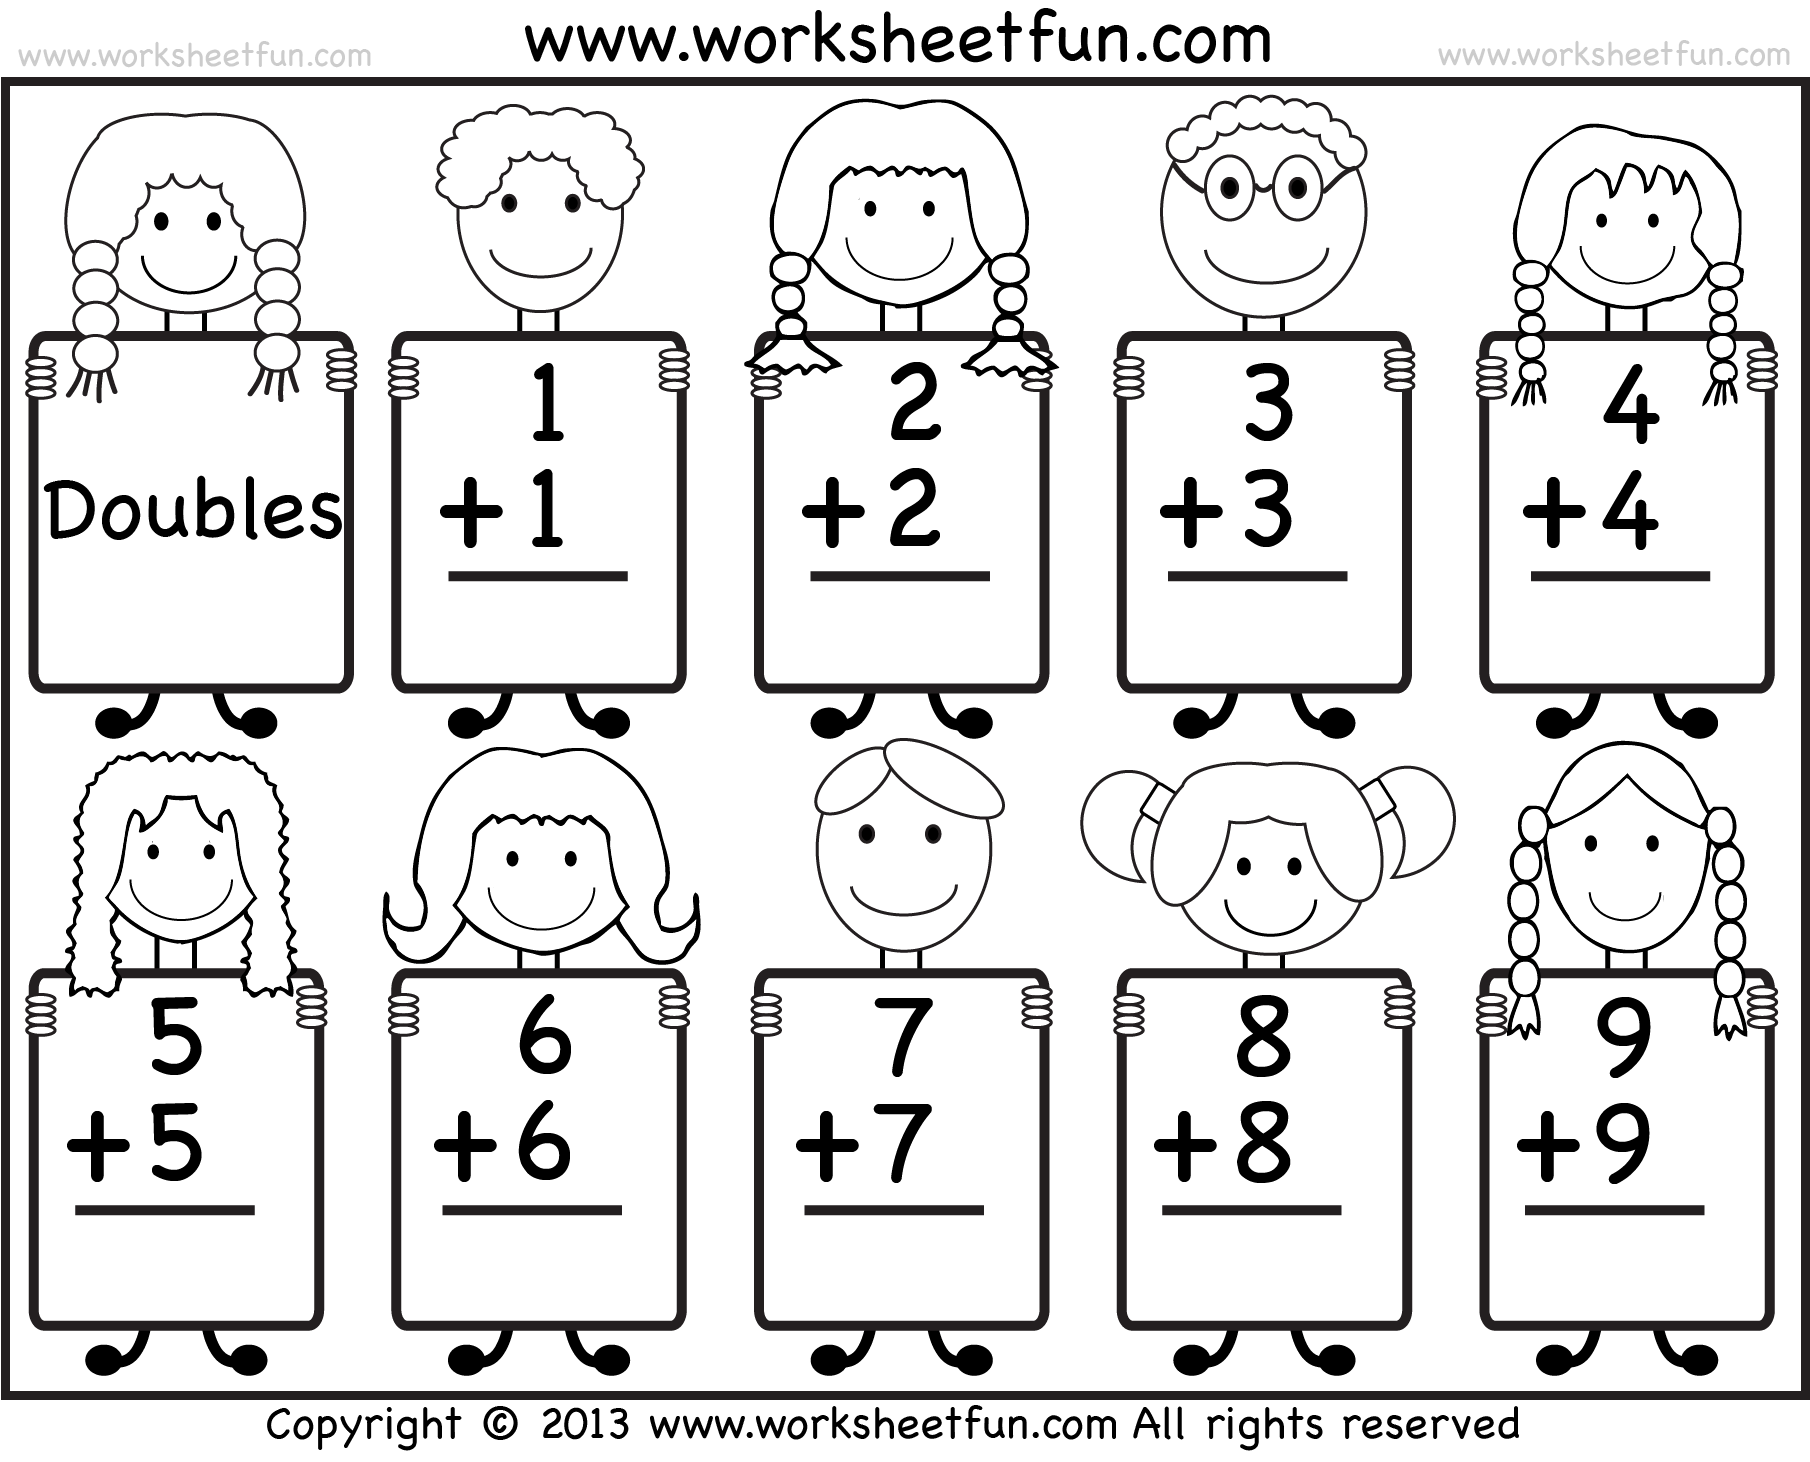 worksheet Addition Doubles addition doubles facts beginner worksheet free doubles